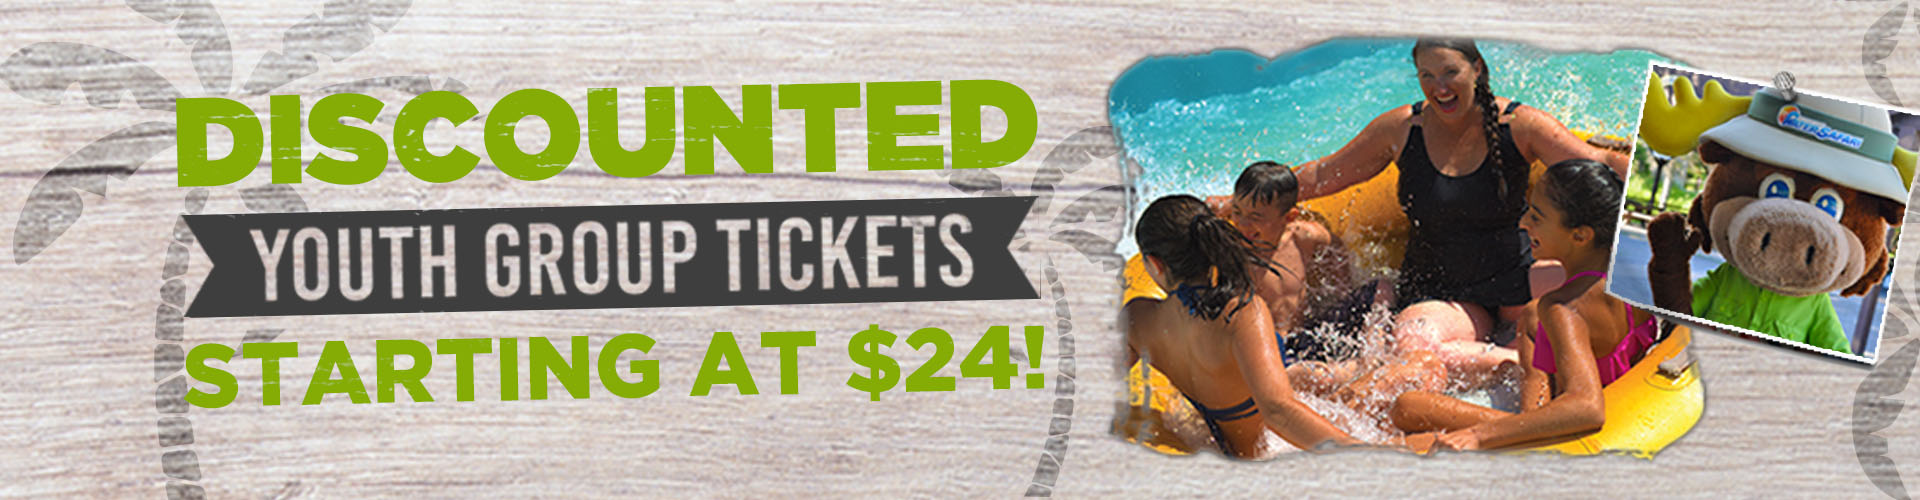 Picture of a family on a tube with water splashing around them and a picture of Walter Safari and on the side discounted youth group tickets starting at $24